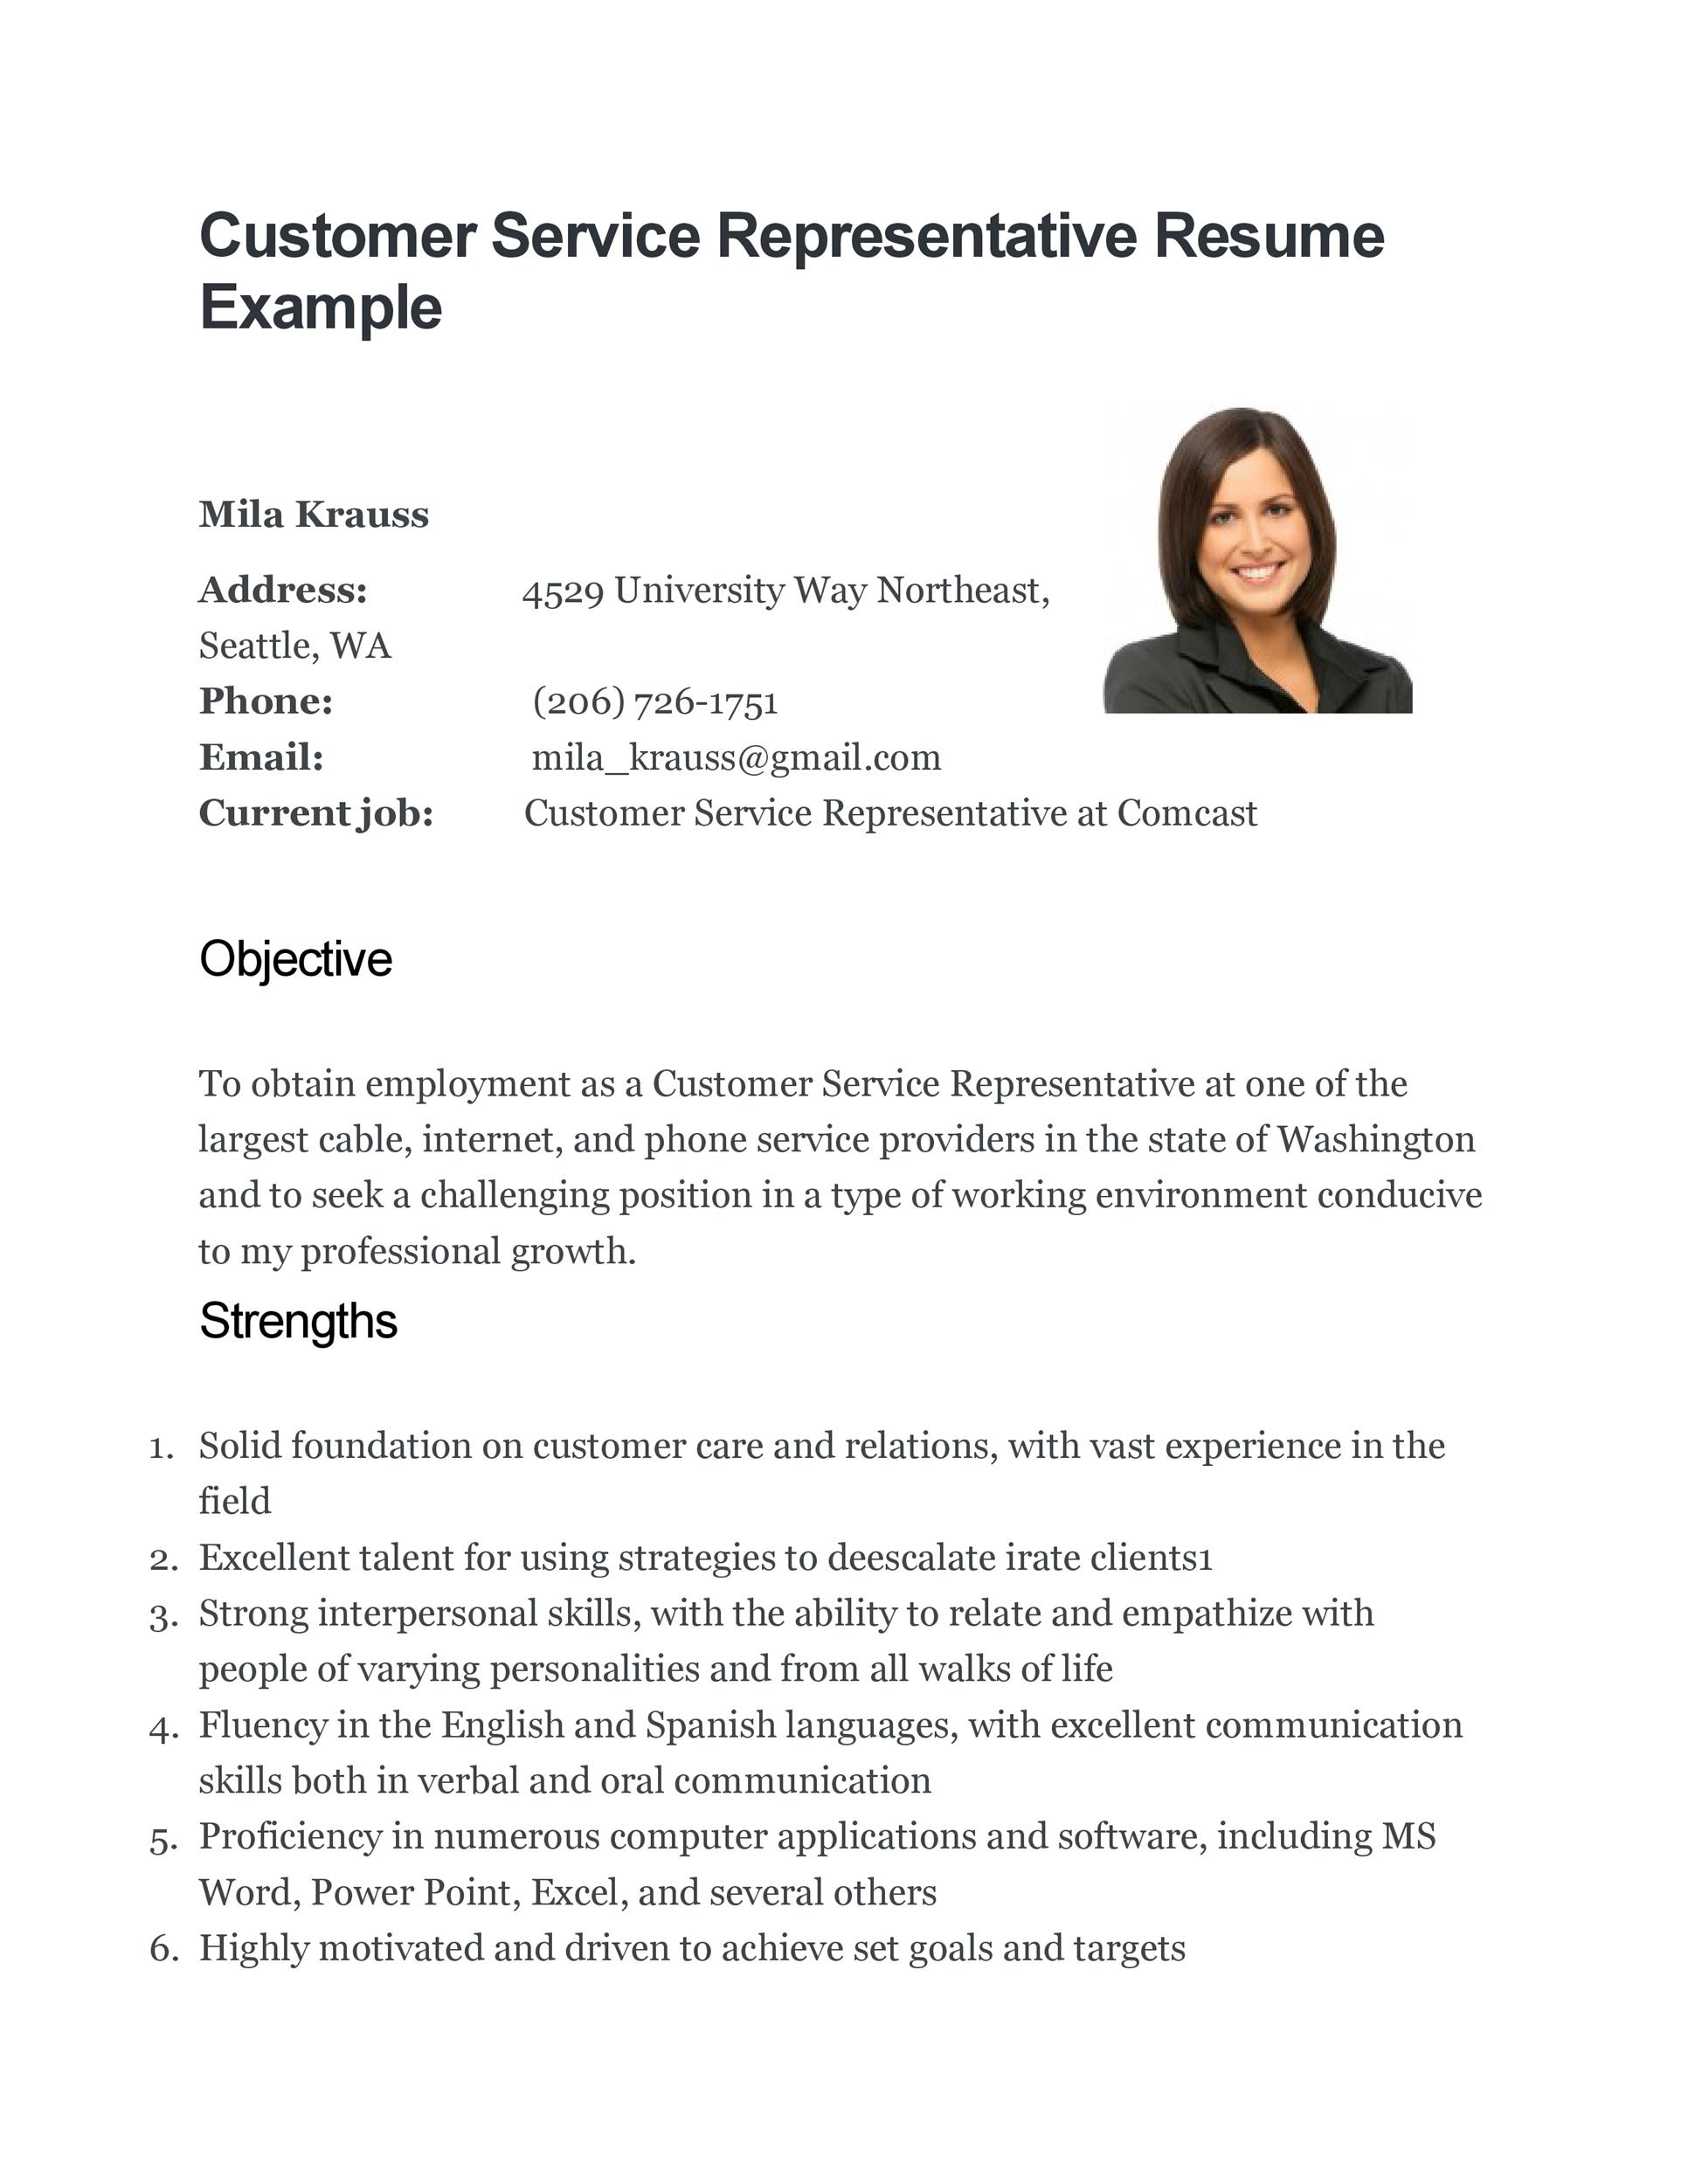 free customer service resume template 16 - Customer Service Job Resume